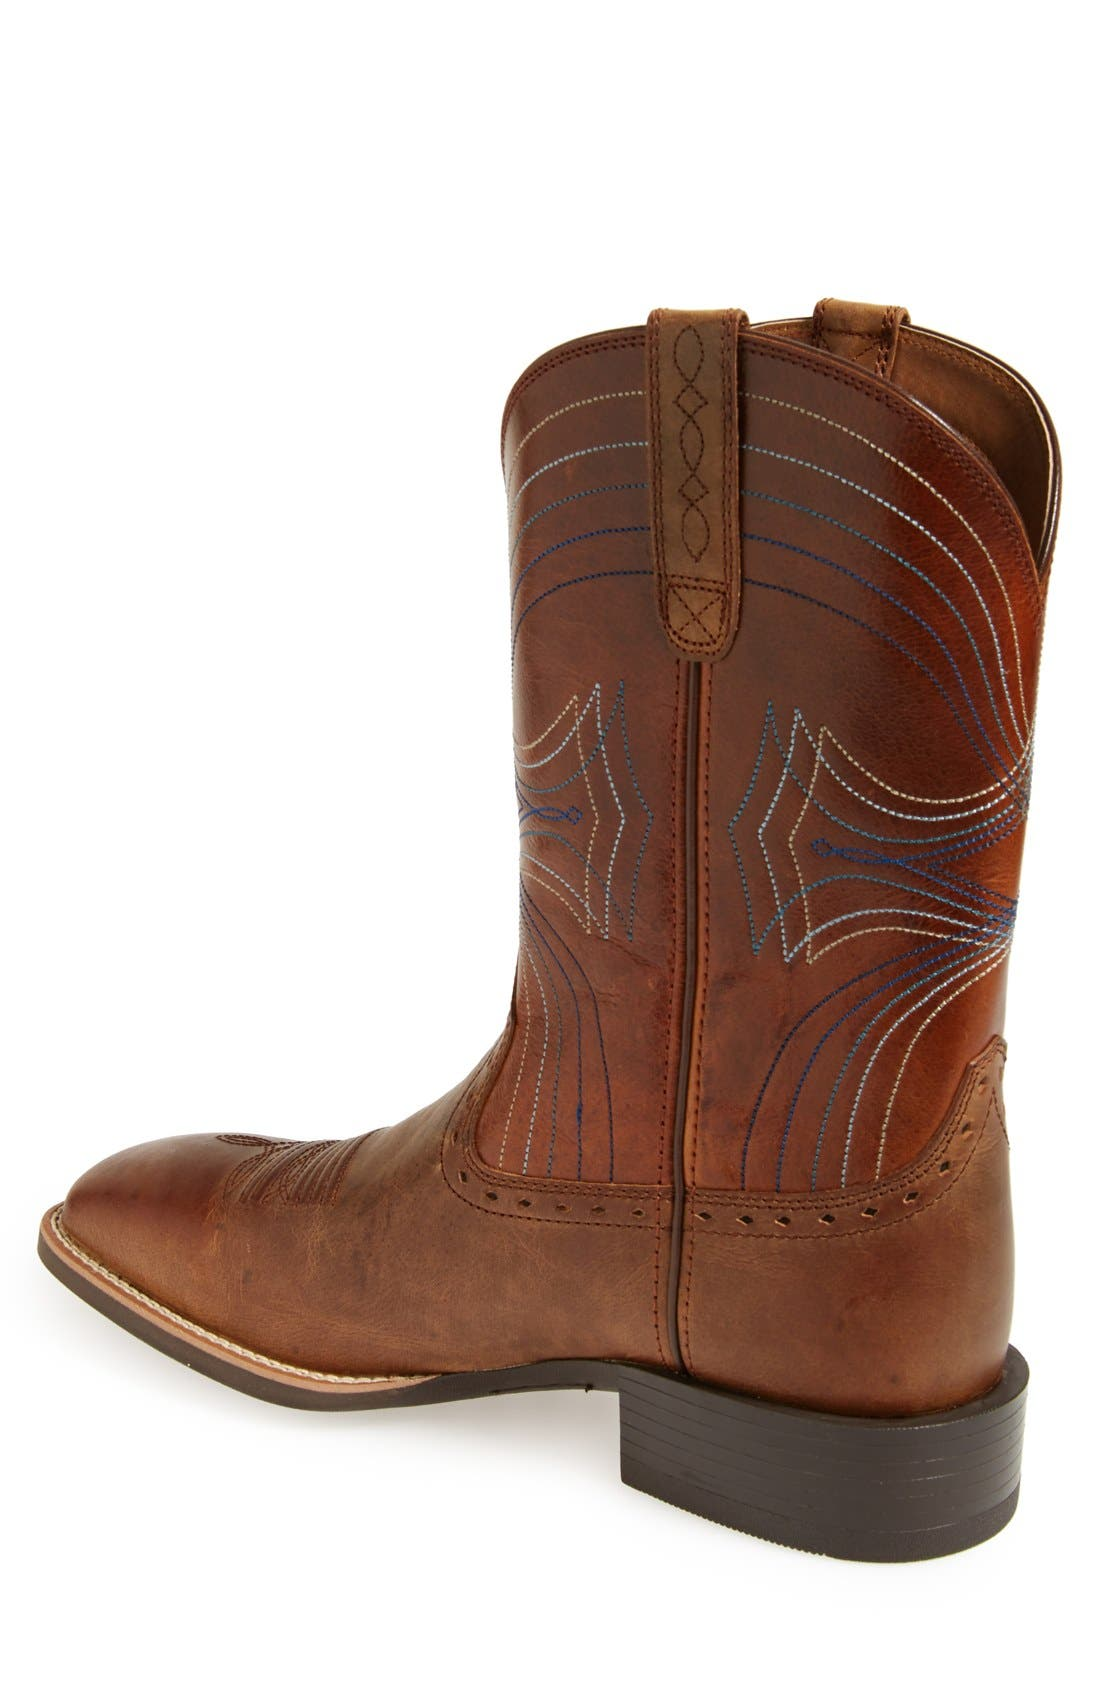 Alternate Image 2  - Ariat 'Sport' Leather Cowboy Boot (Men)